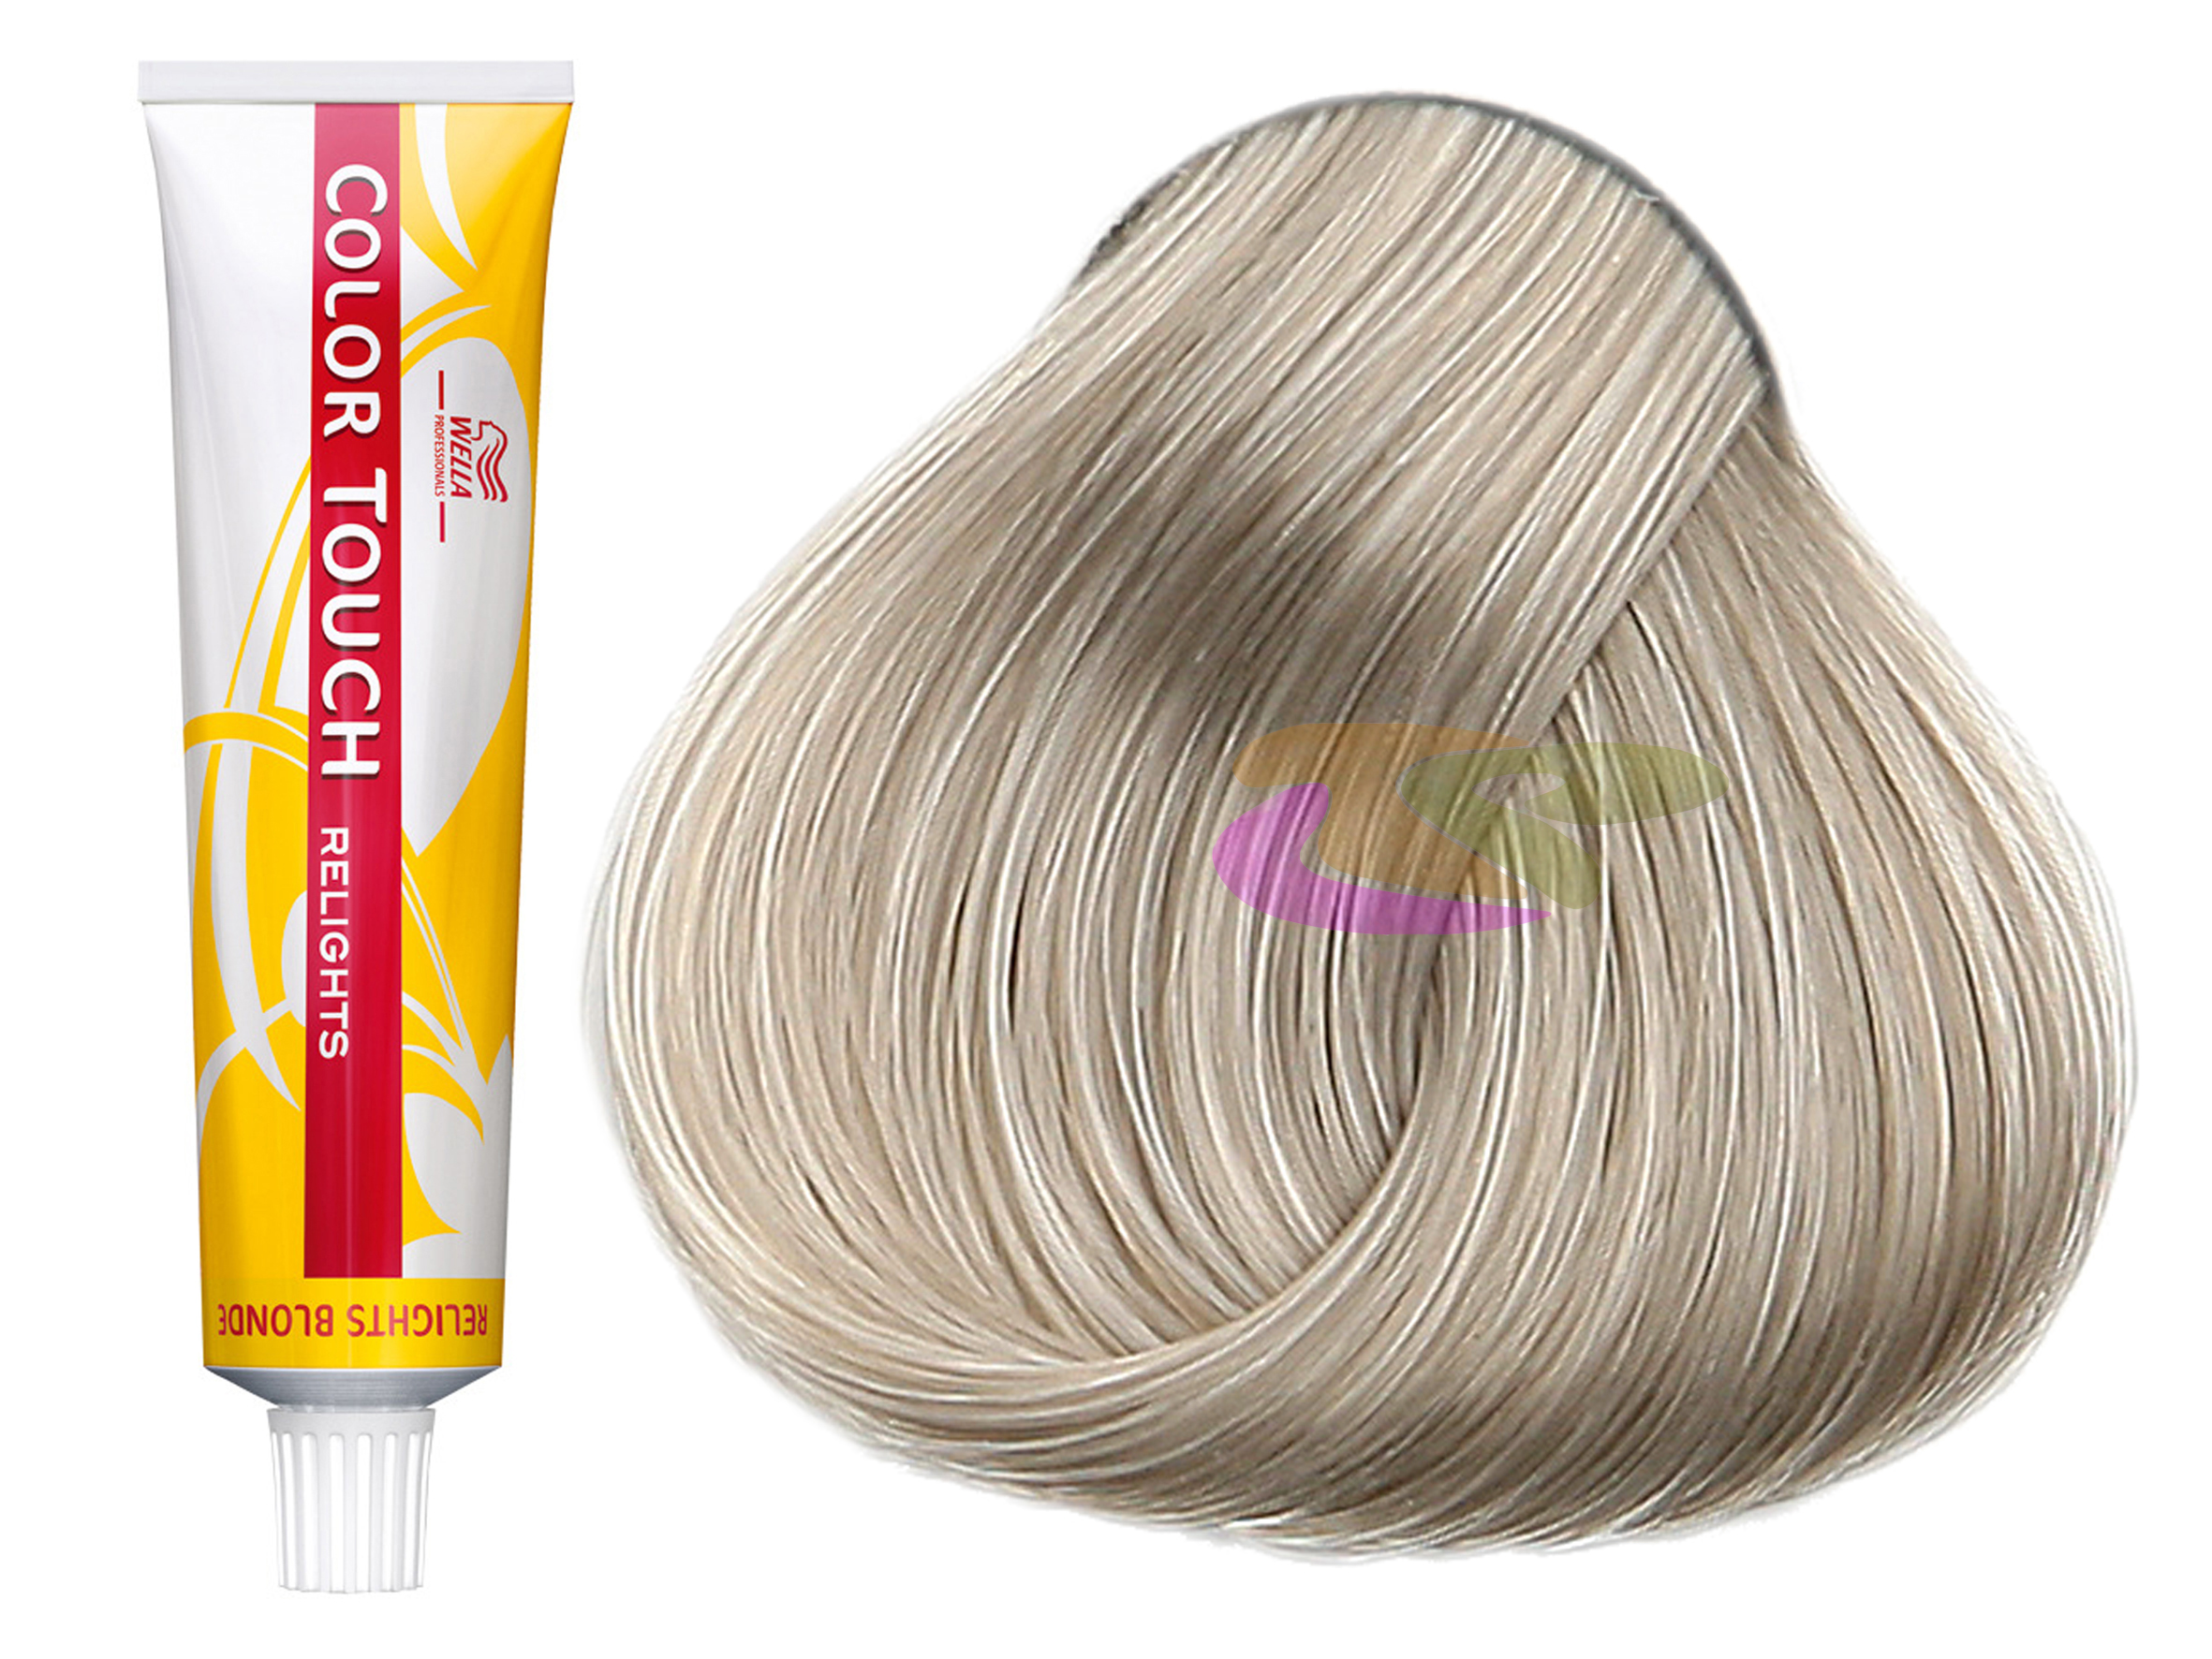 Ba o color touch relights blonde 18 matizador de mechas - Bano de color o tinte ...